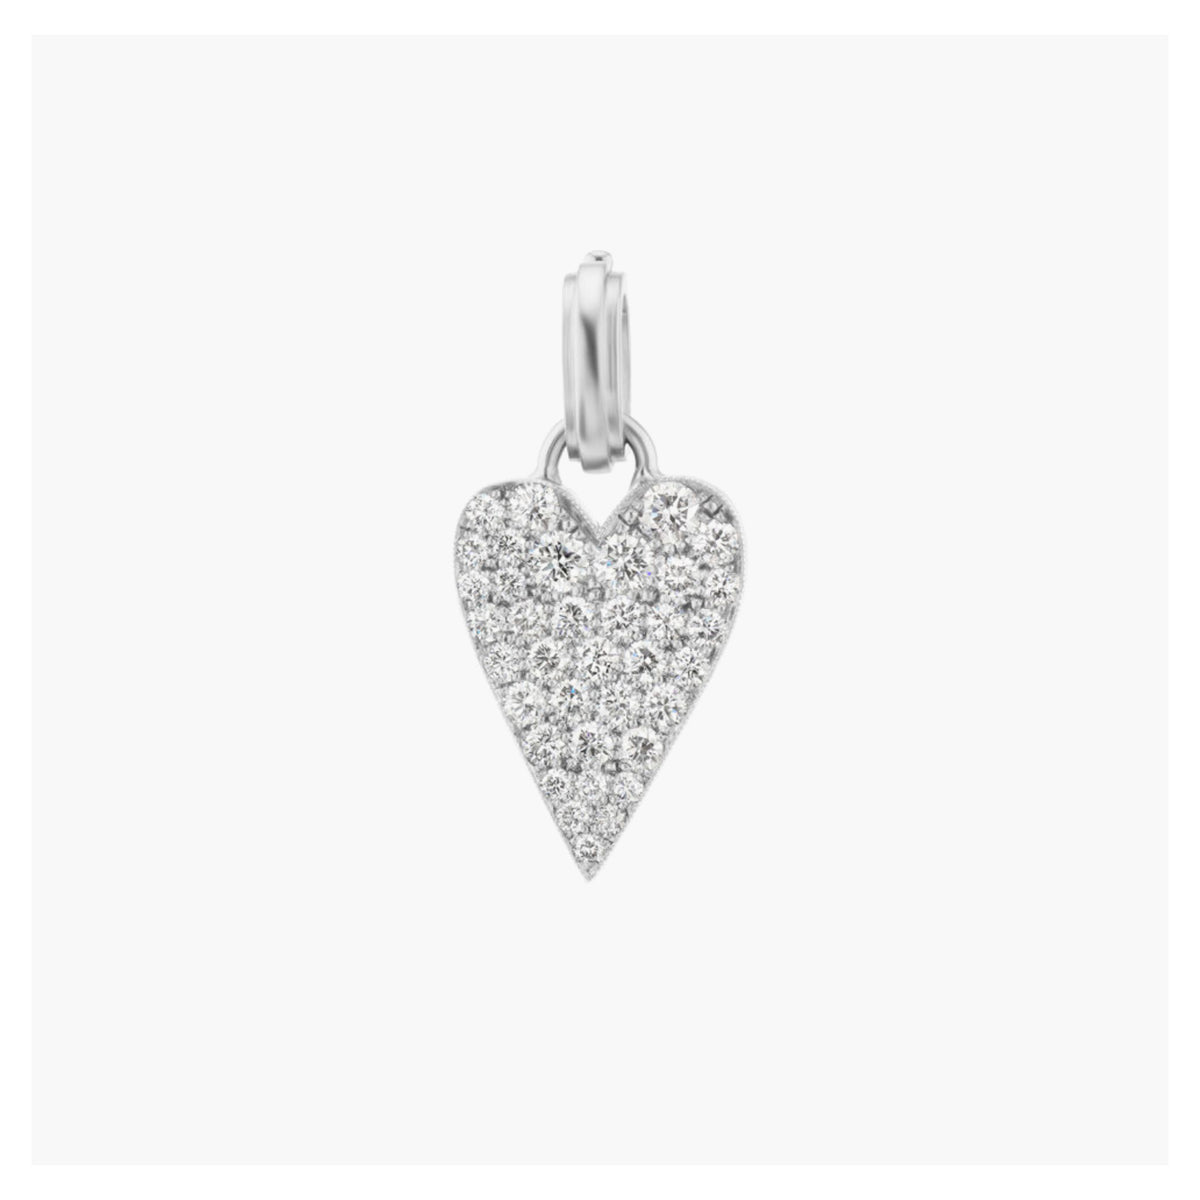 Small Heart Charm with Diamond